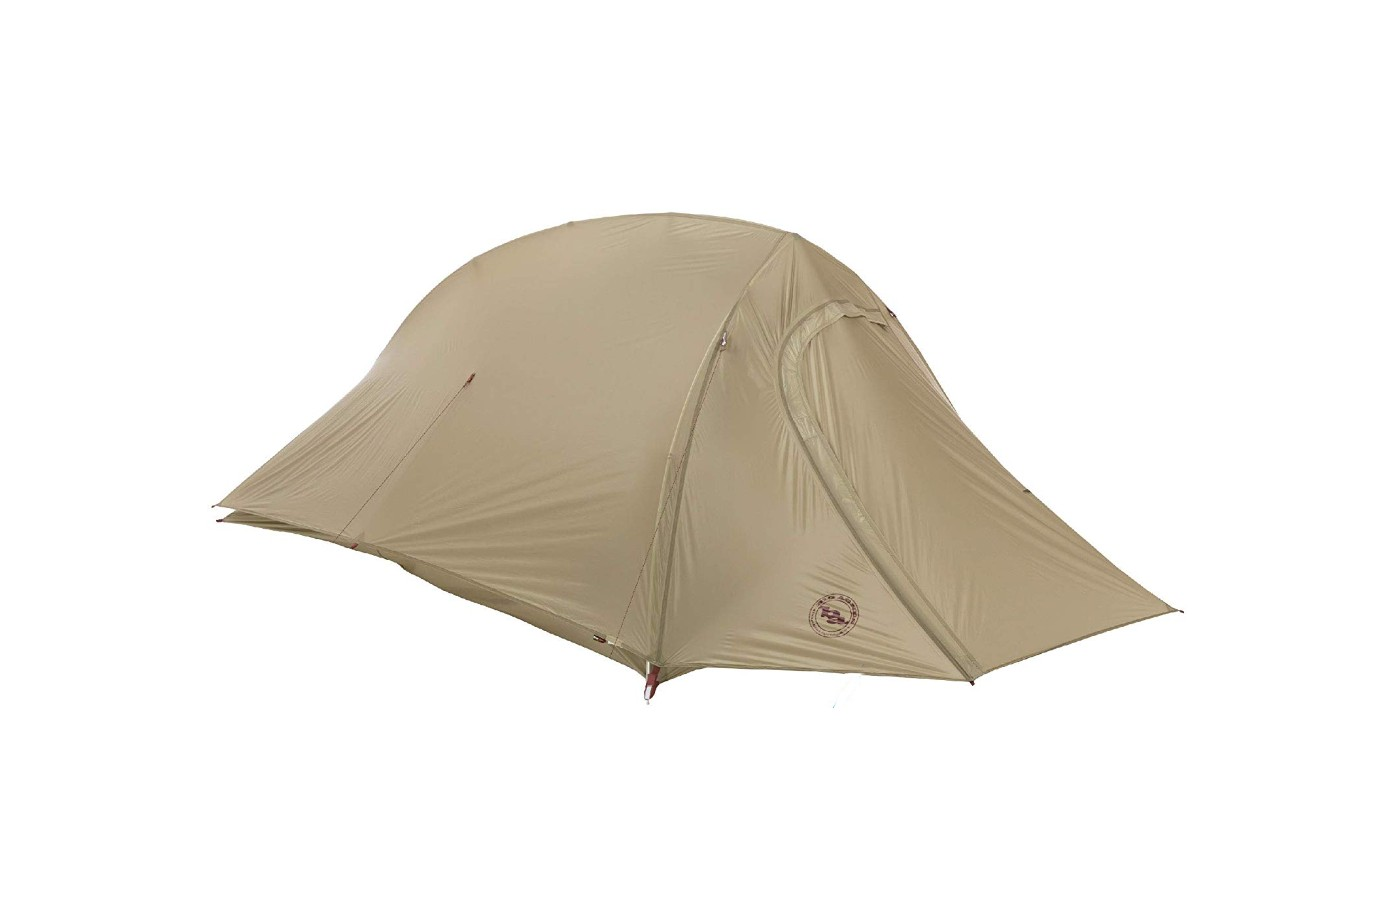 The UL2 has a full tent rain fly with waterproof seams to help prevent leaks.